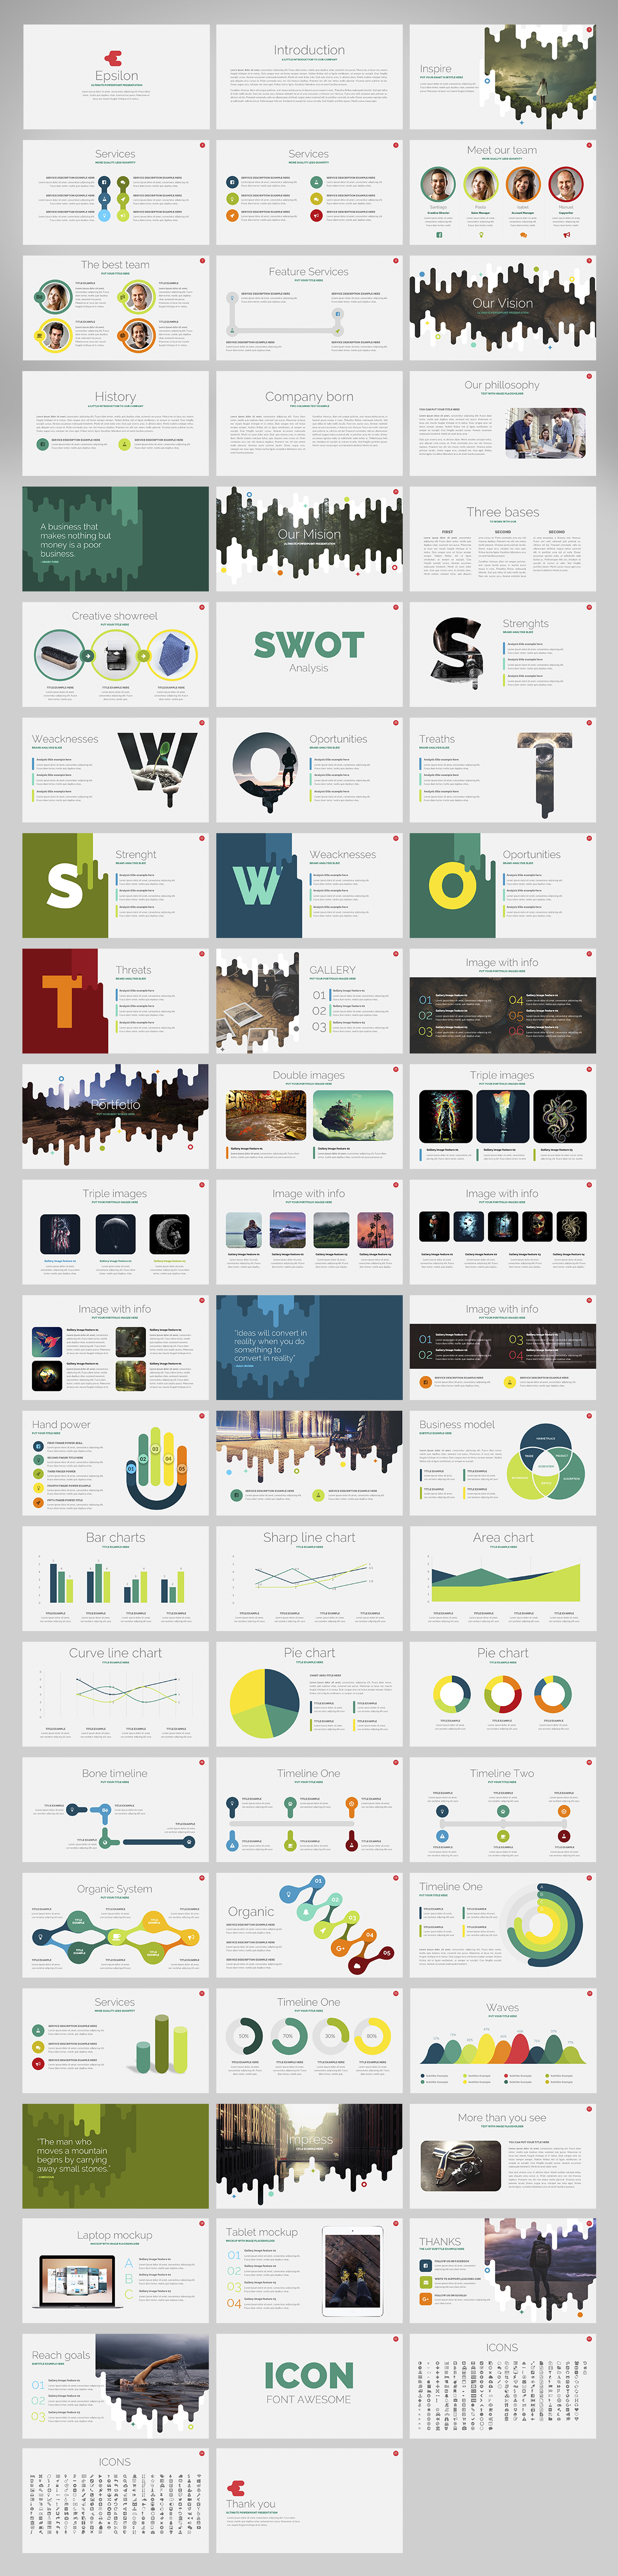 Five Stars | Powerpoint Bundle by Zacomic Studios on @creativemarket ...